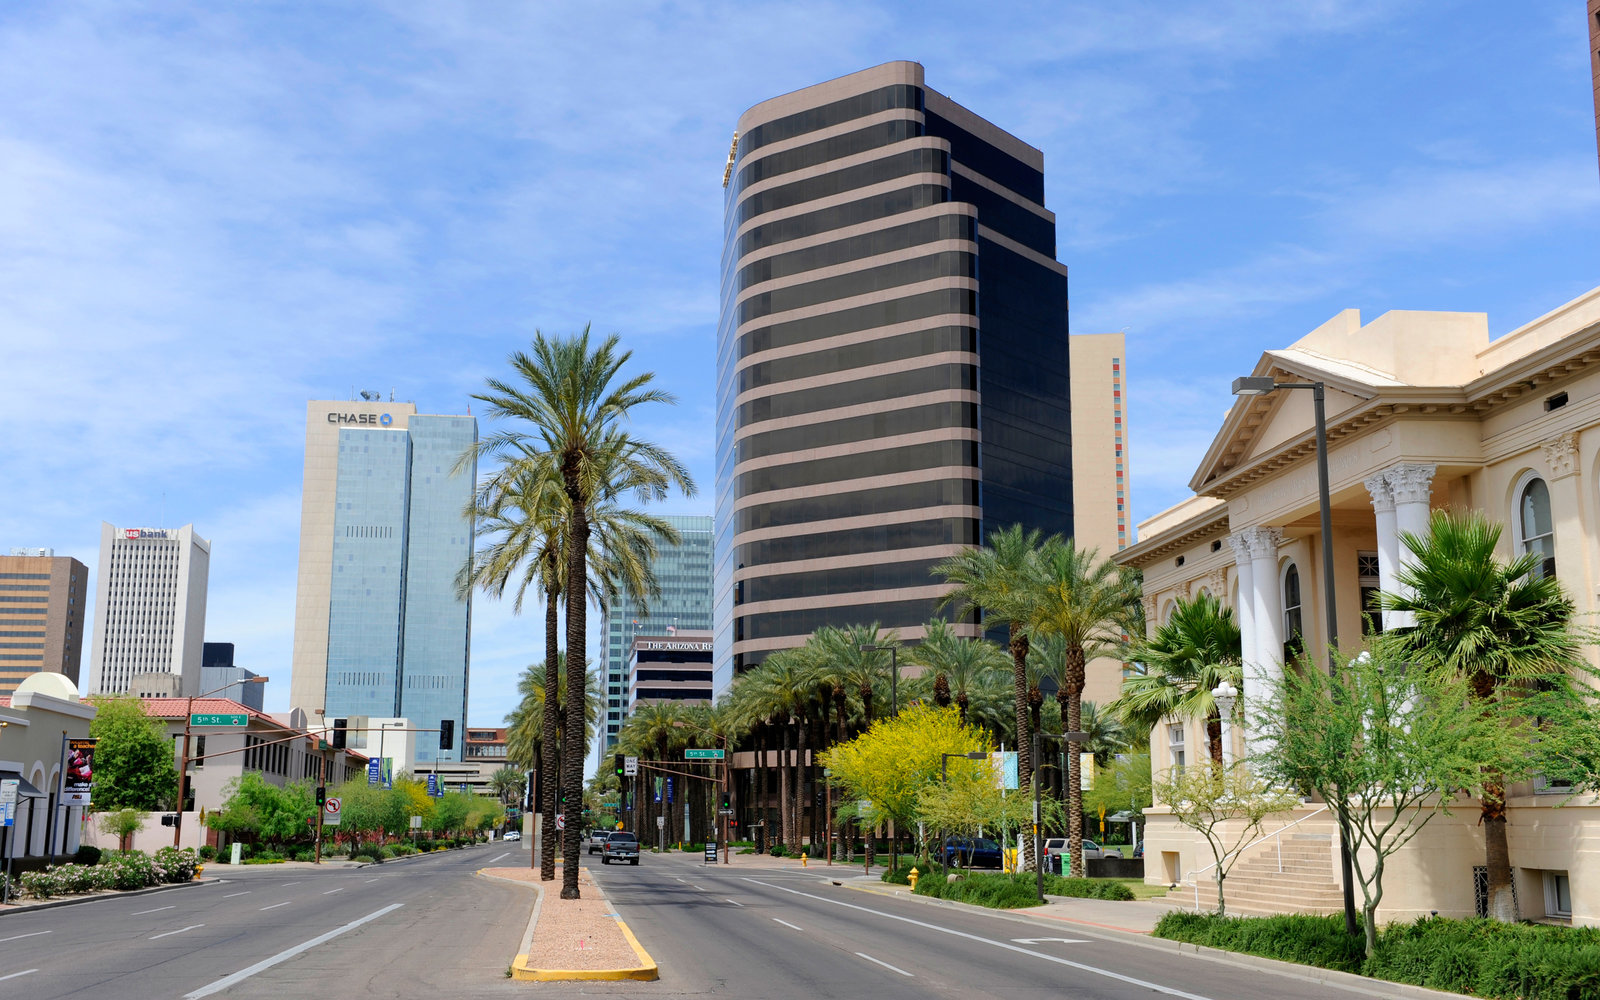 Phoenix Arizona America's Rudest Cities